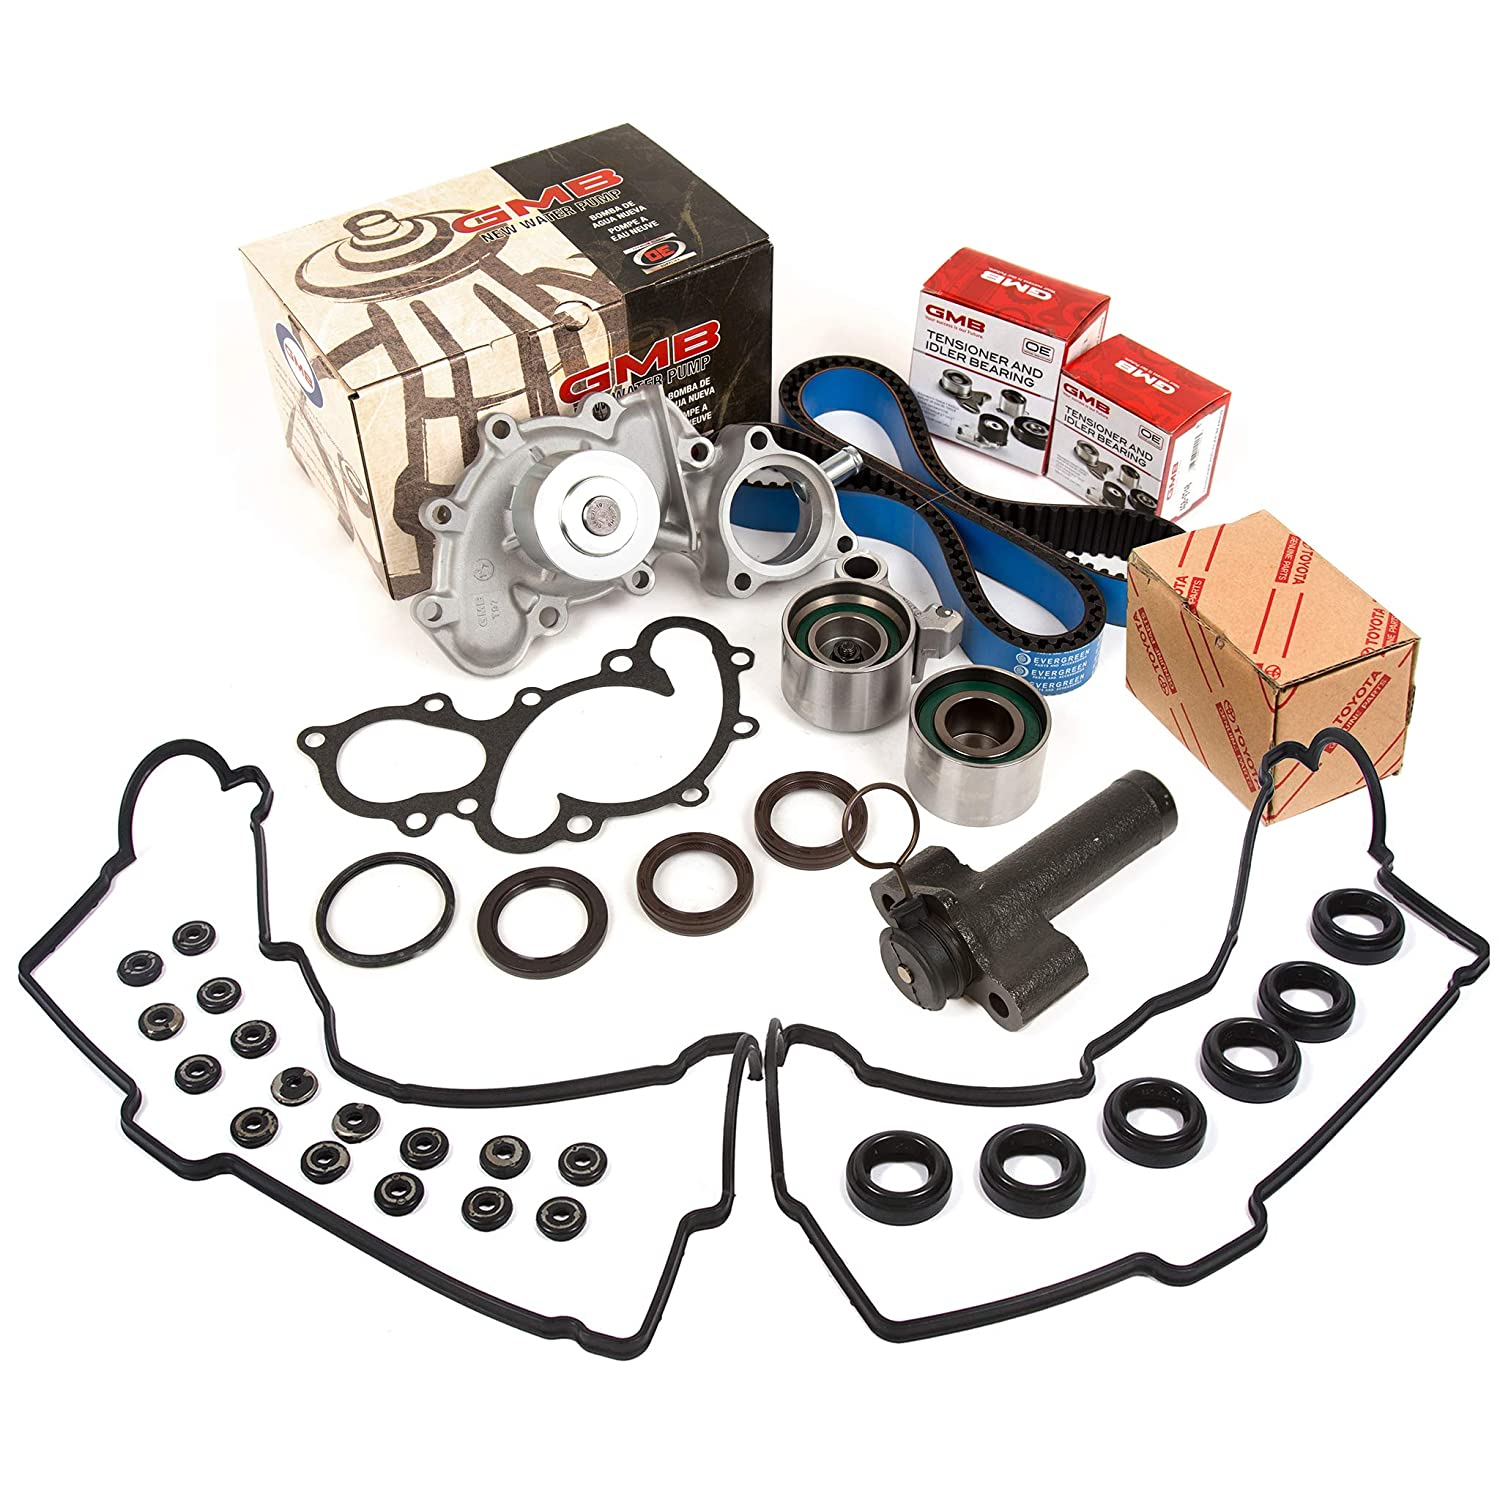 Evergreen TBK271HPHVC Race Series Timing Belt Kit GMB Water Pump Tensioner Valve Cover Gasket Fit Toyota 3.4 5VZFE